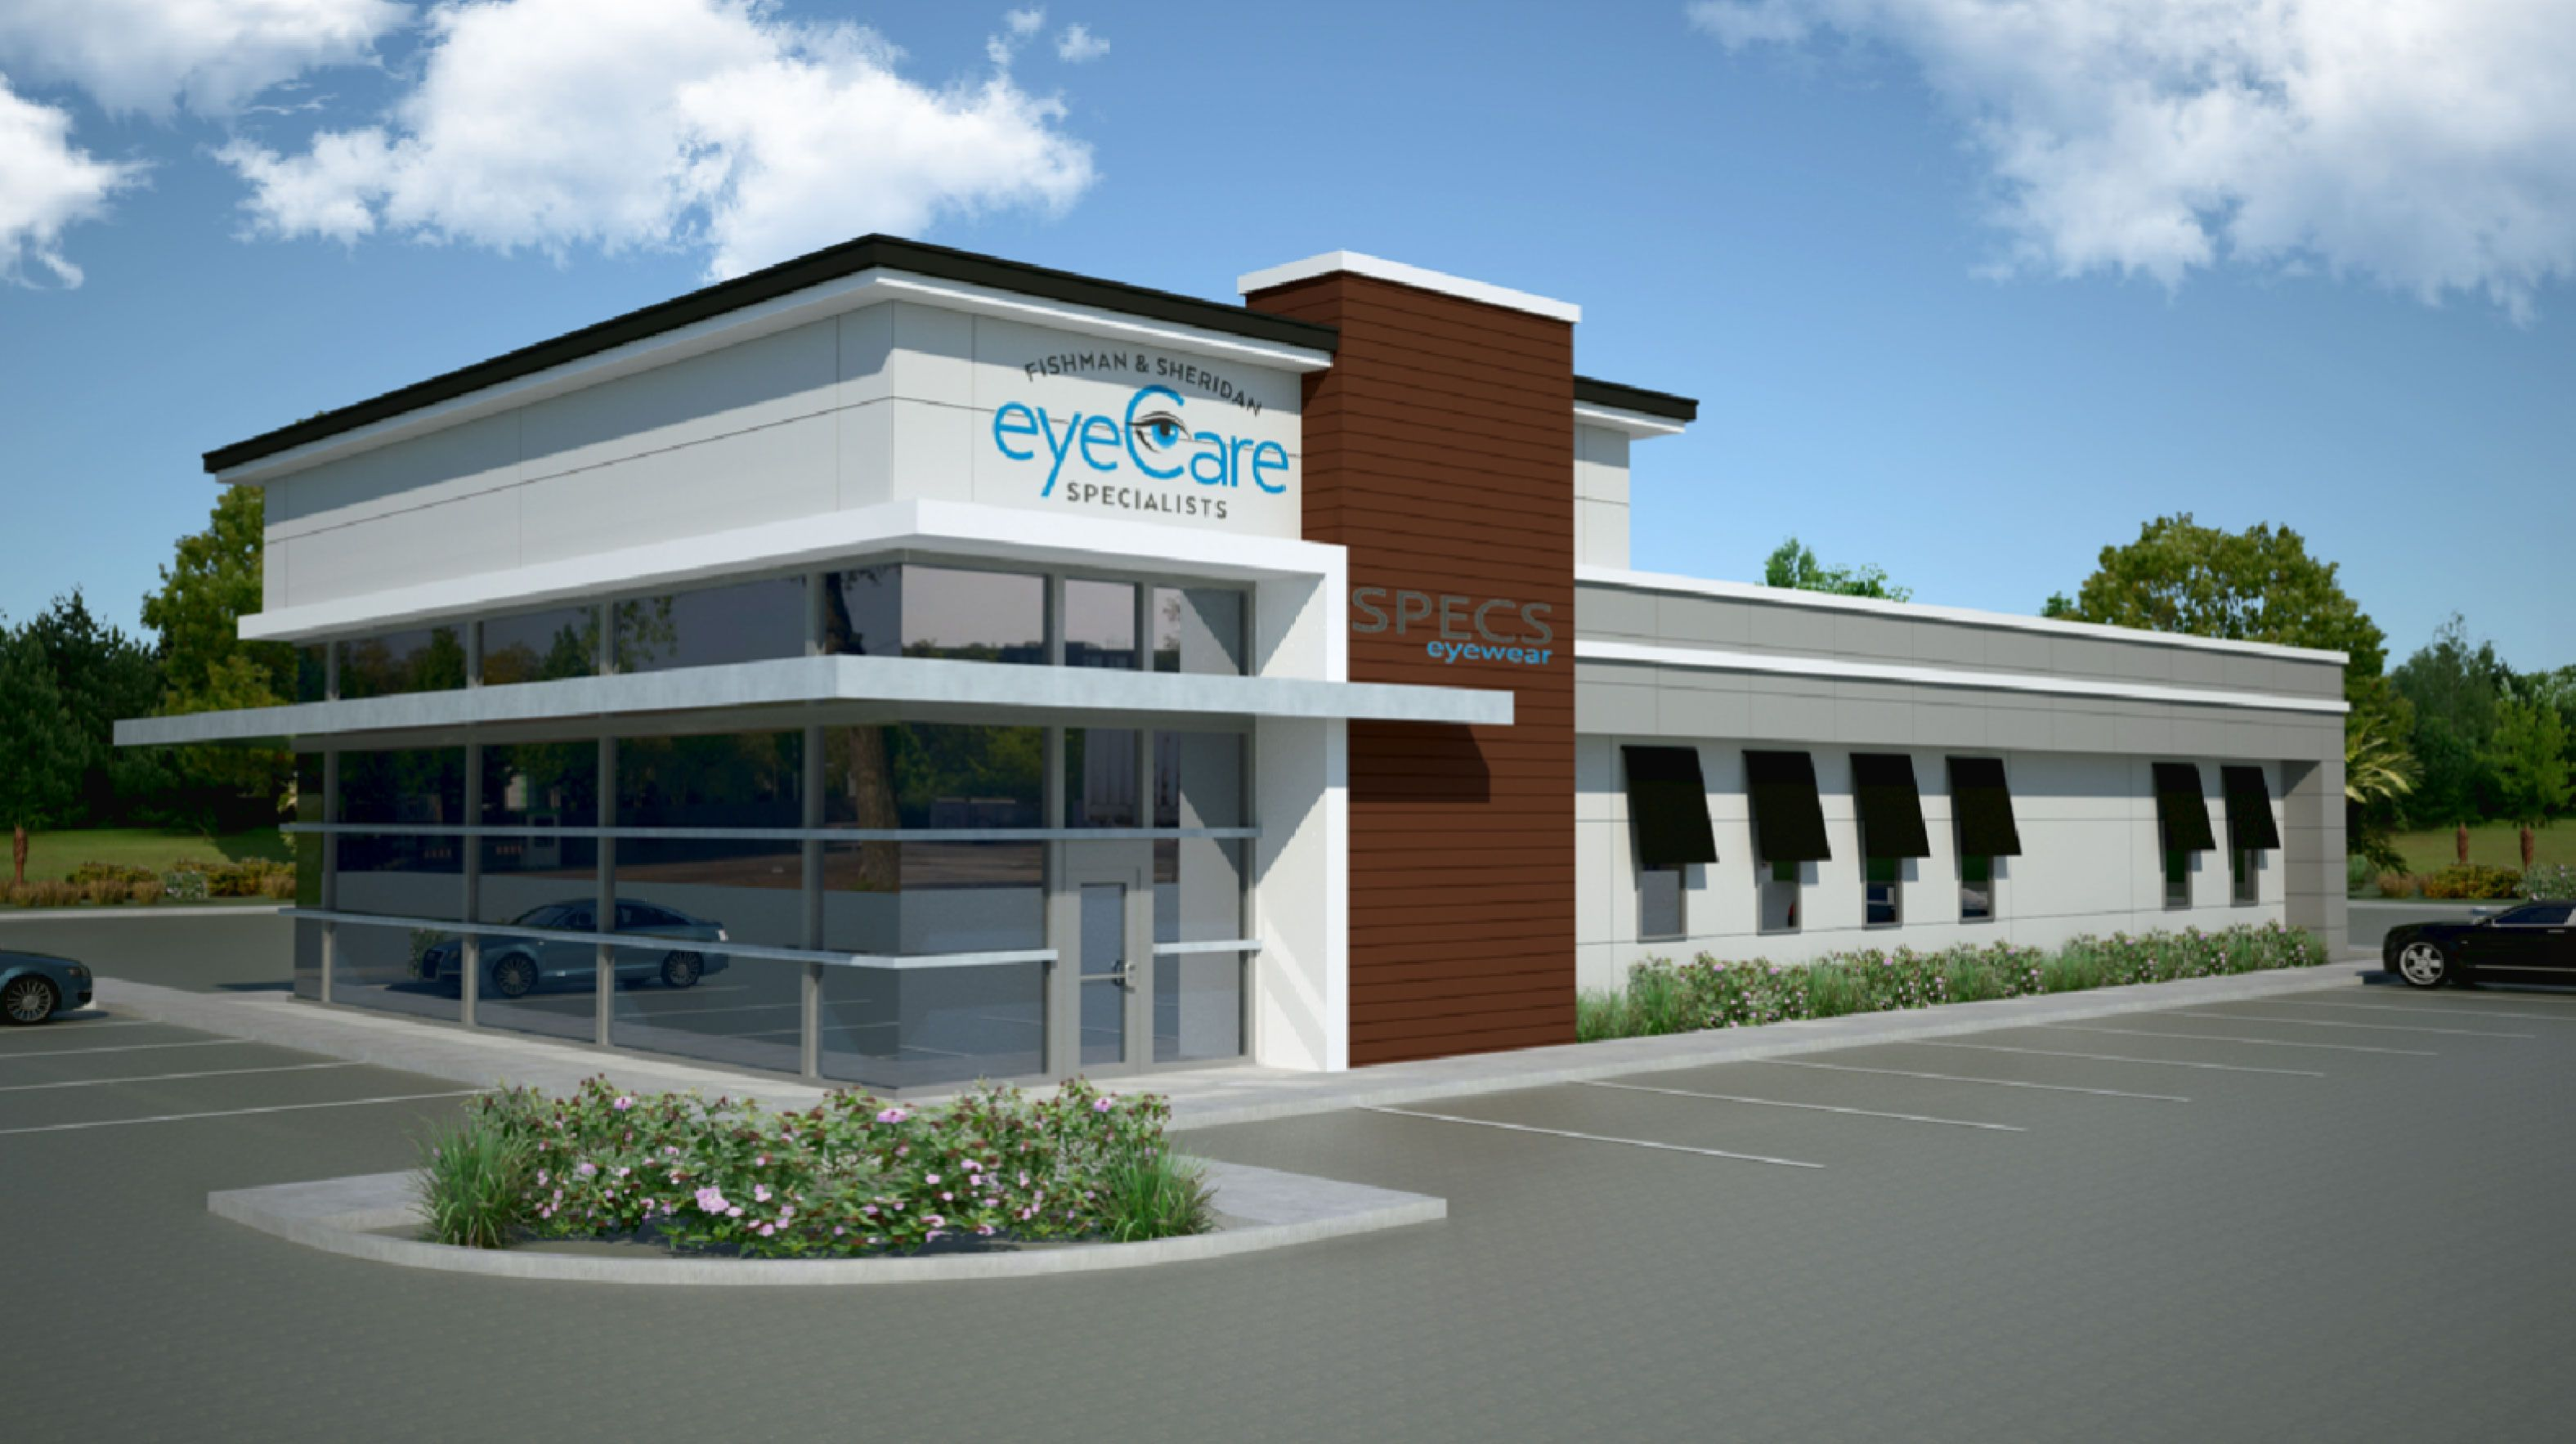 image of Fishman & Sheridan eyeCare Specialists Clermont office